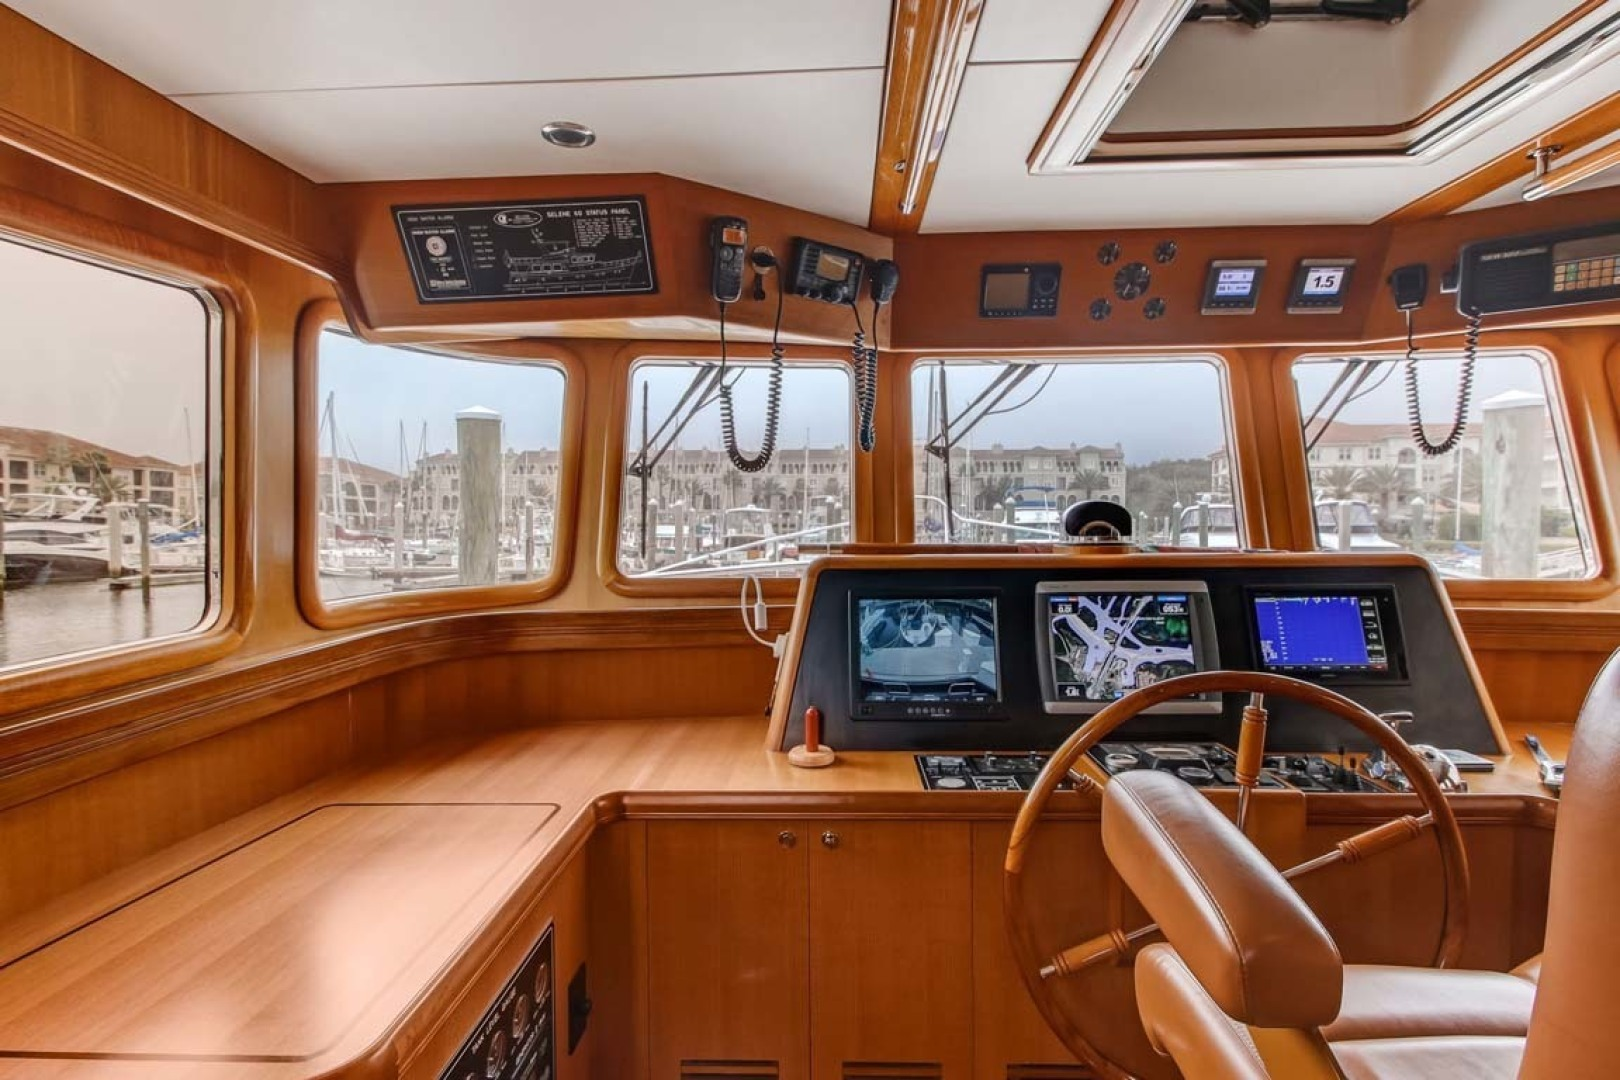 Selene-60 Ocean Trawler 2010-Gypsy Magic Jacksonville-Florida-United States-Helm station-1346719 | Thumbnail